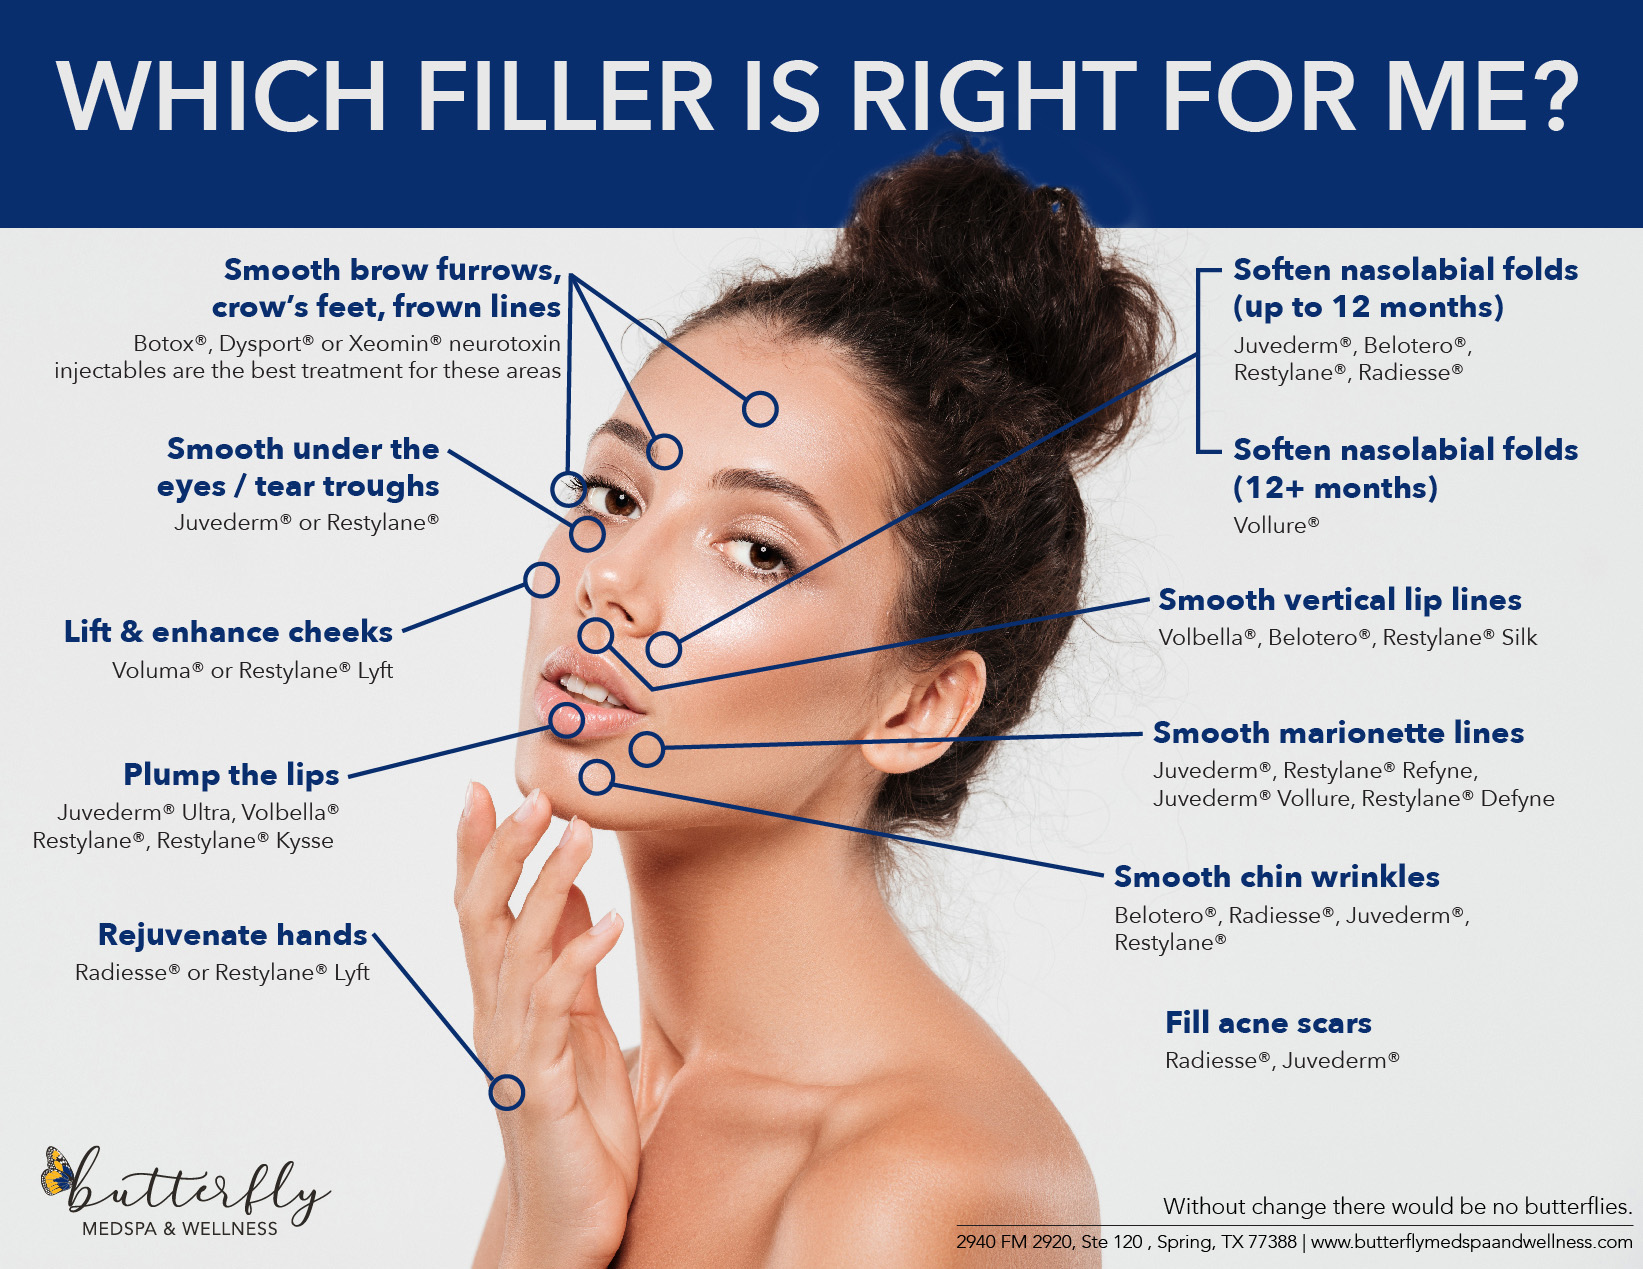 Filler Botox Juviderm Injectables dermal fillers